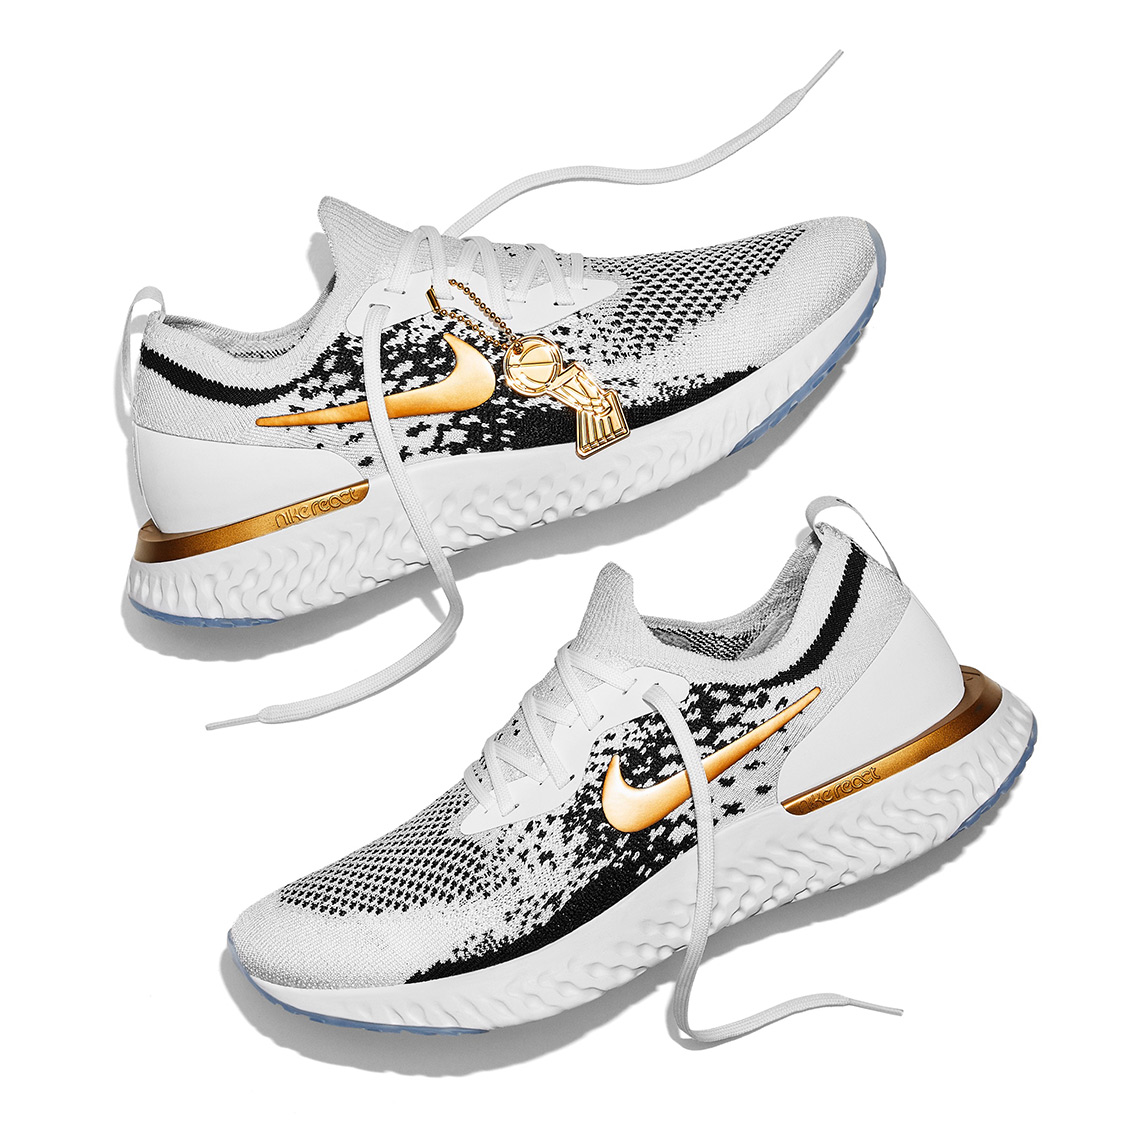 new arrival eaeac 58015 Nike Epic React Flyknit NBA Champions Golden State Warriors ...